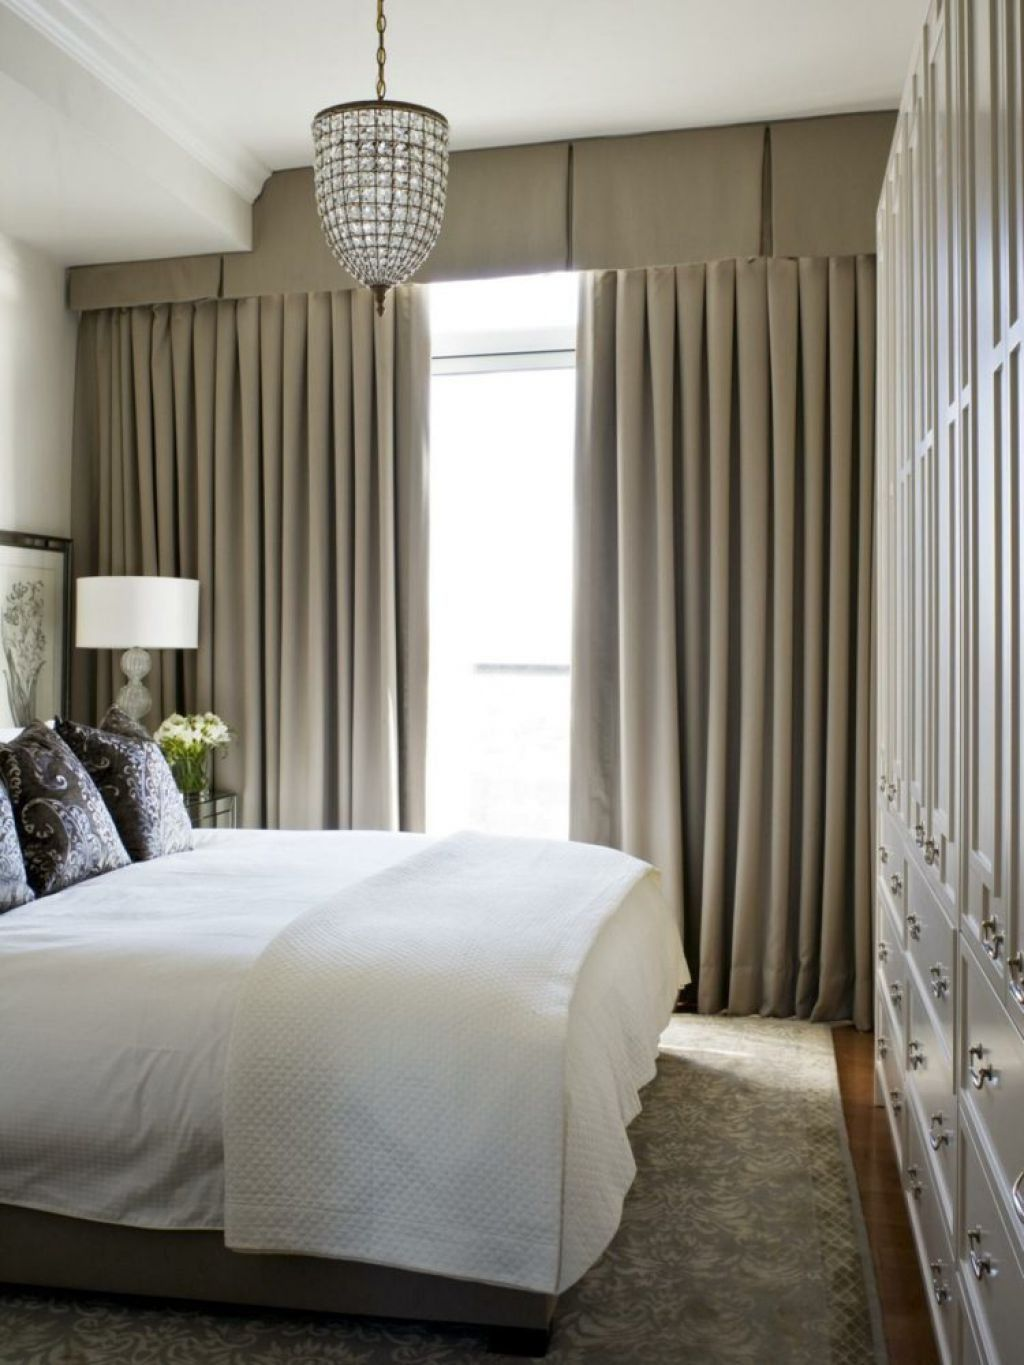 Different Types Of Bedroom Valances Small Bedroom Interior